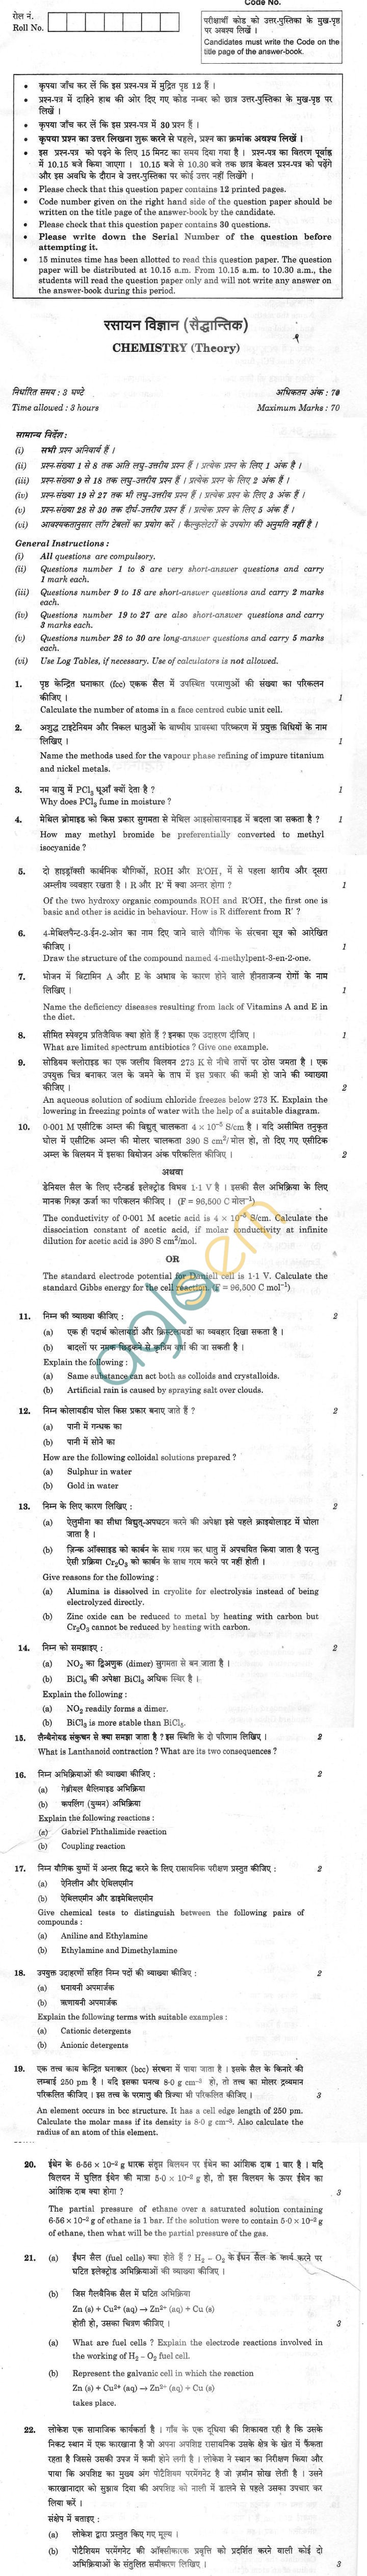 CBSE Compartment Exam 2013 Class XII Question Paper - Chemistry